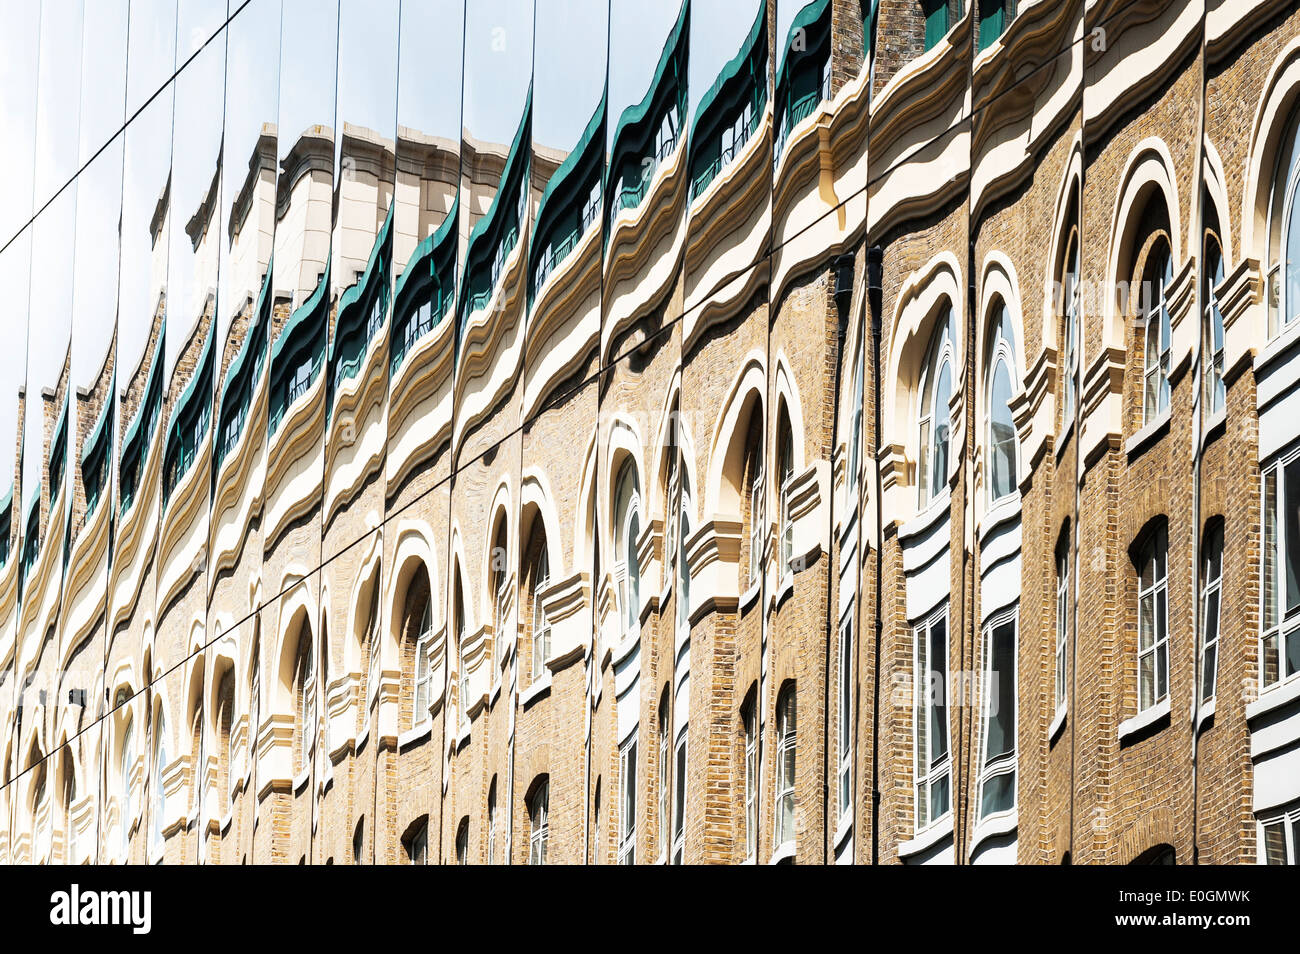 The distorted reflection of a building. - Stock Image